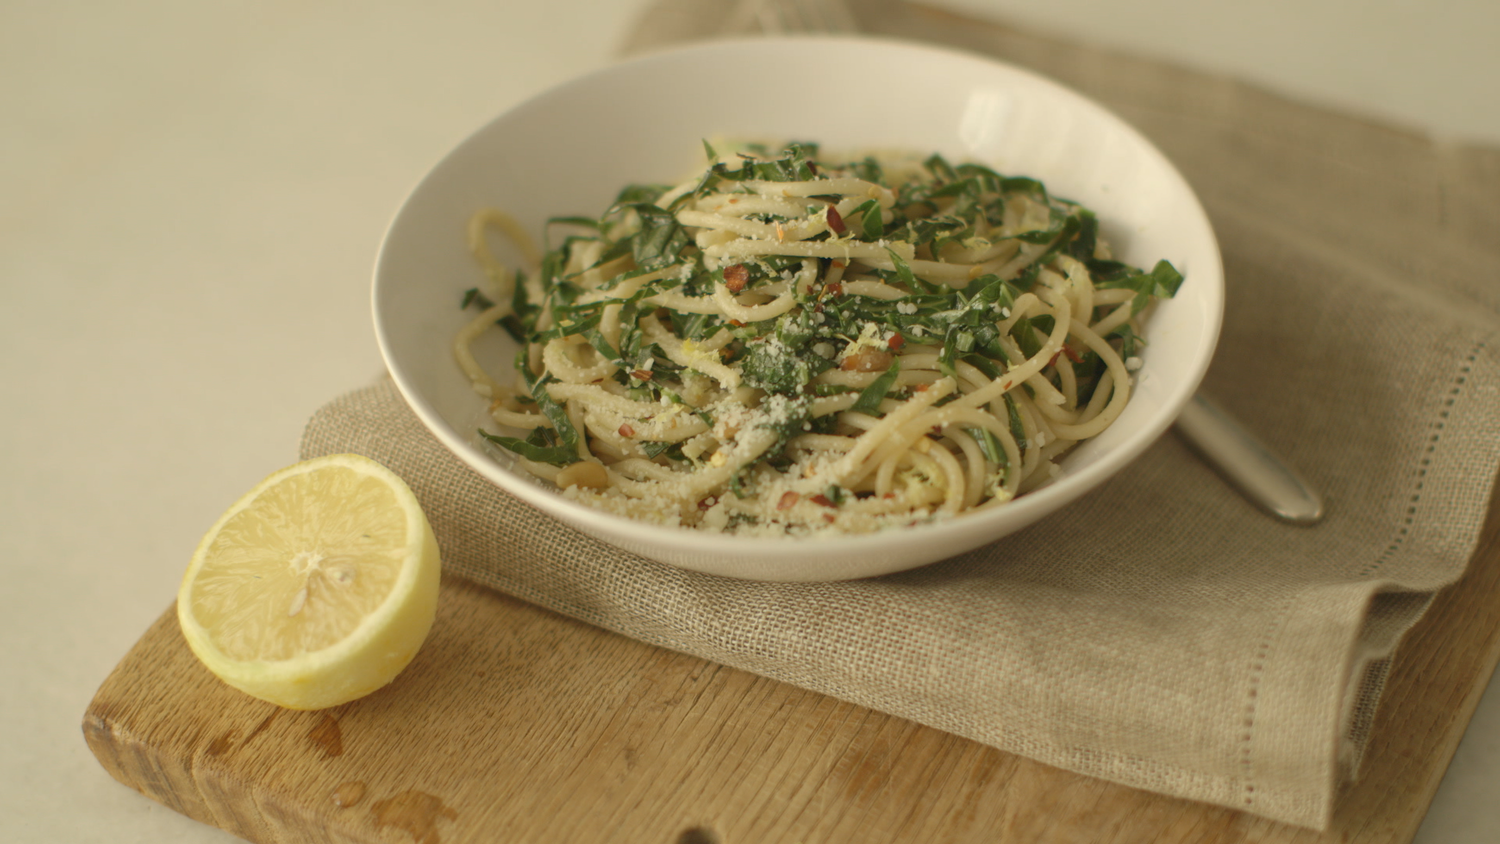 Video: Spaghetti with Collard Greens and Lemon | Martha Stewart